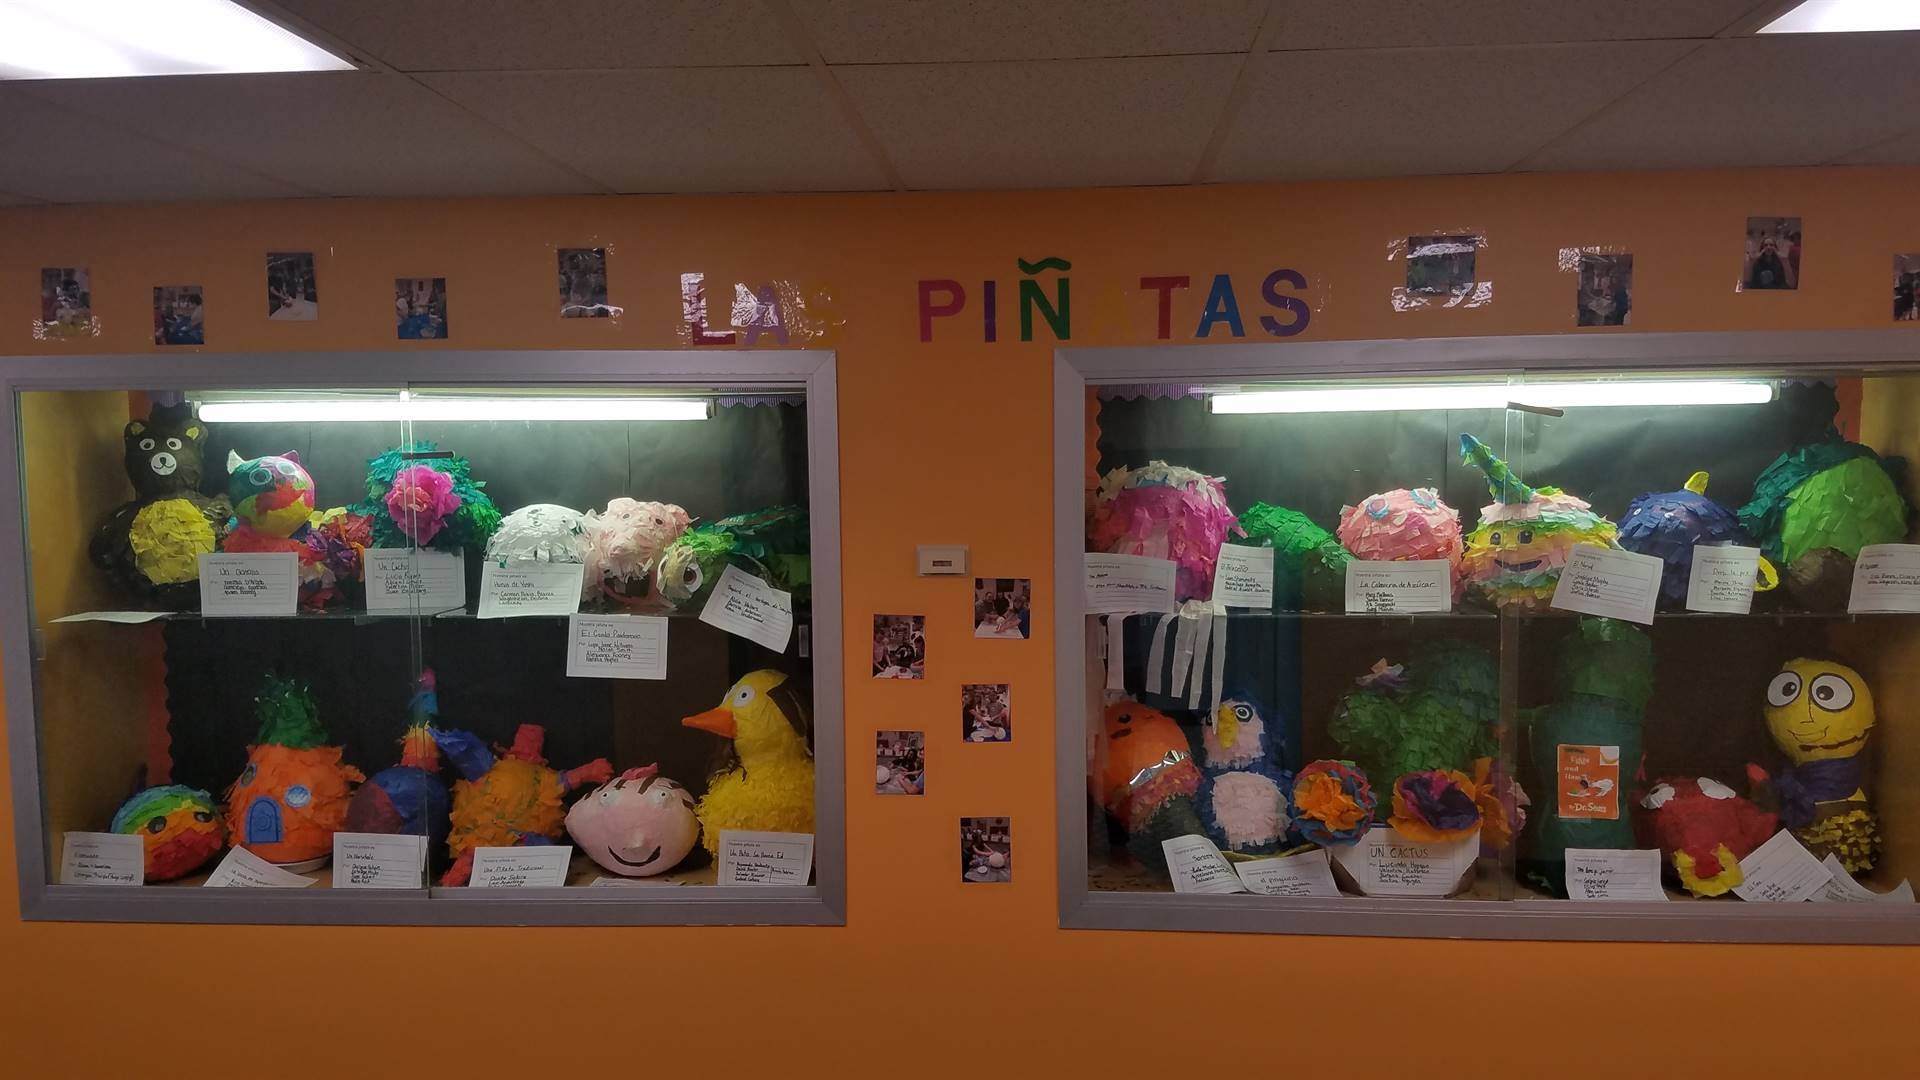 Mrs. Foster's Spanish students' pinatas project